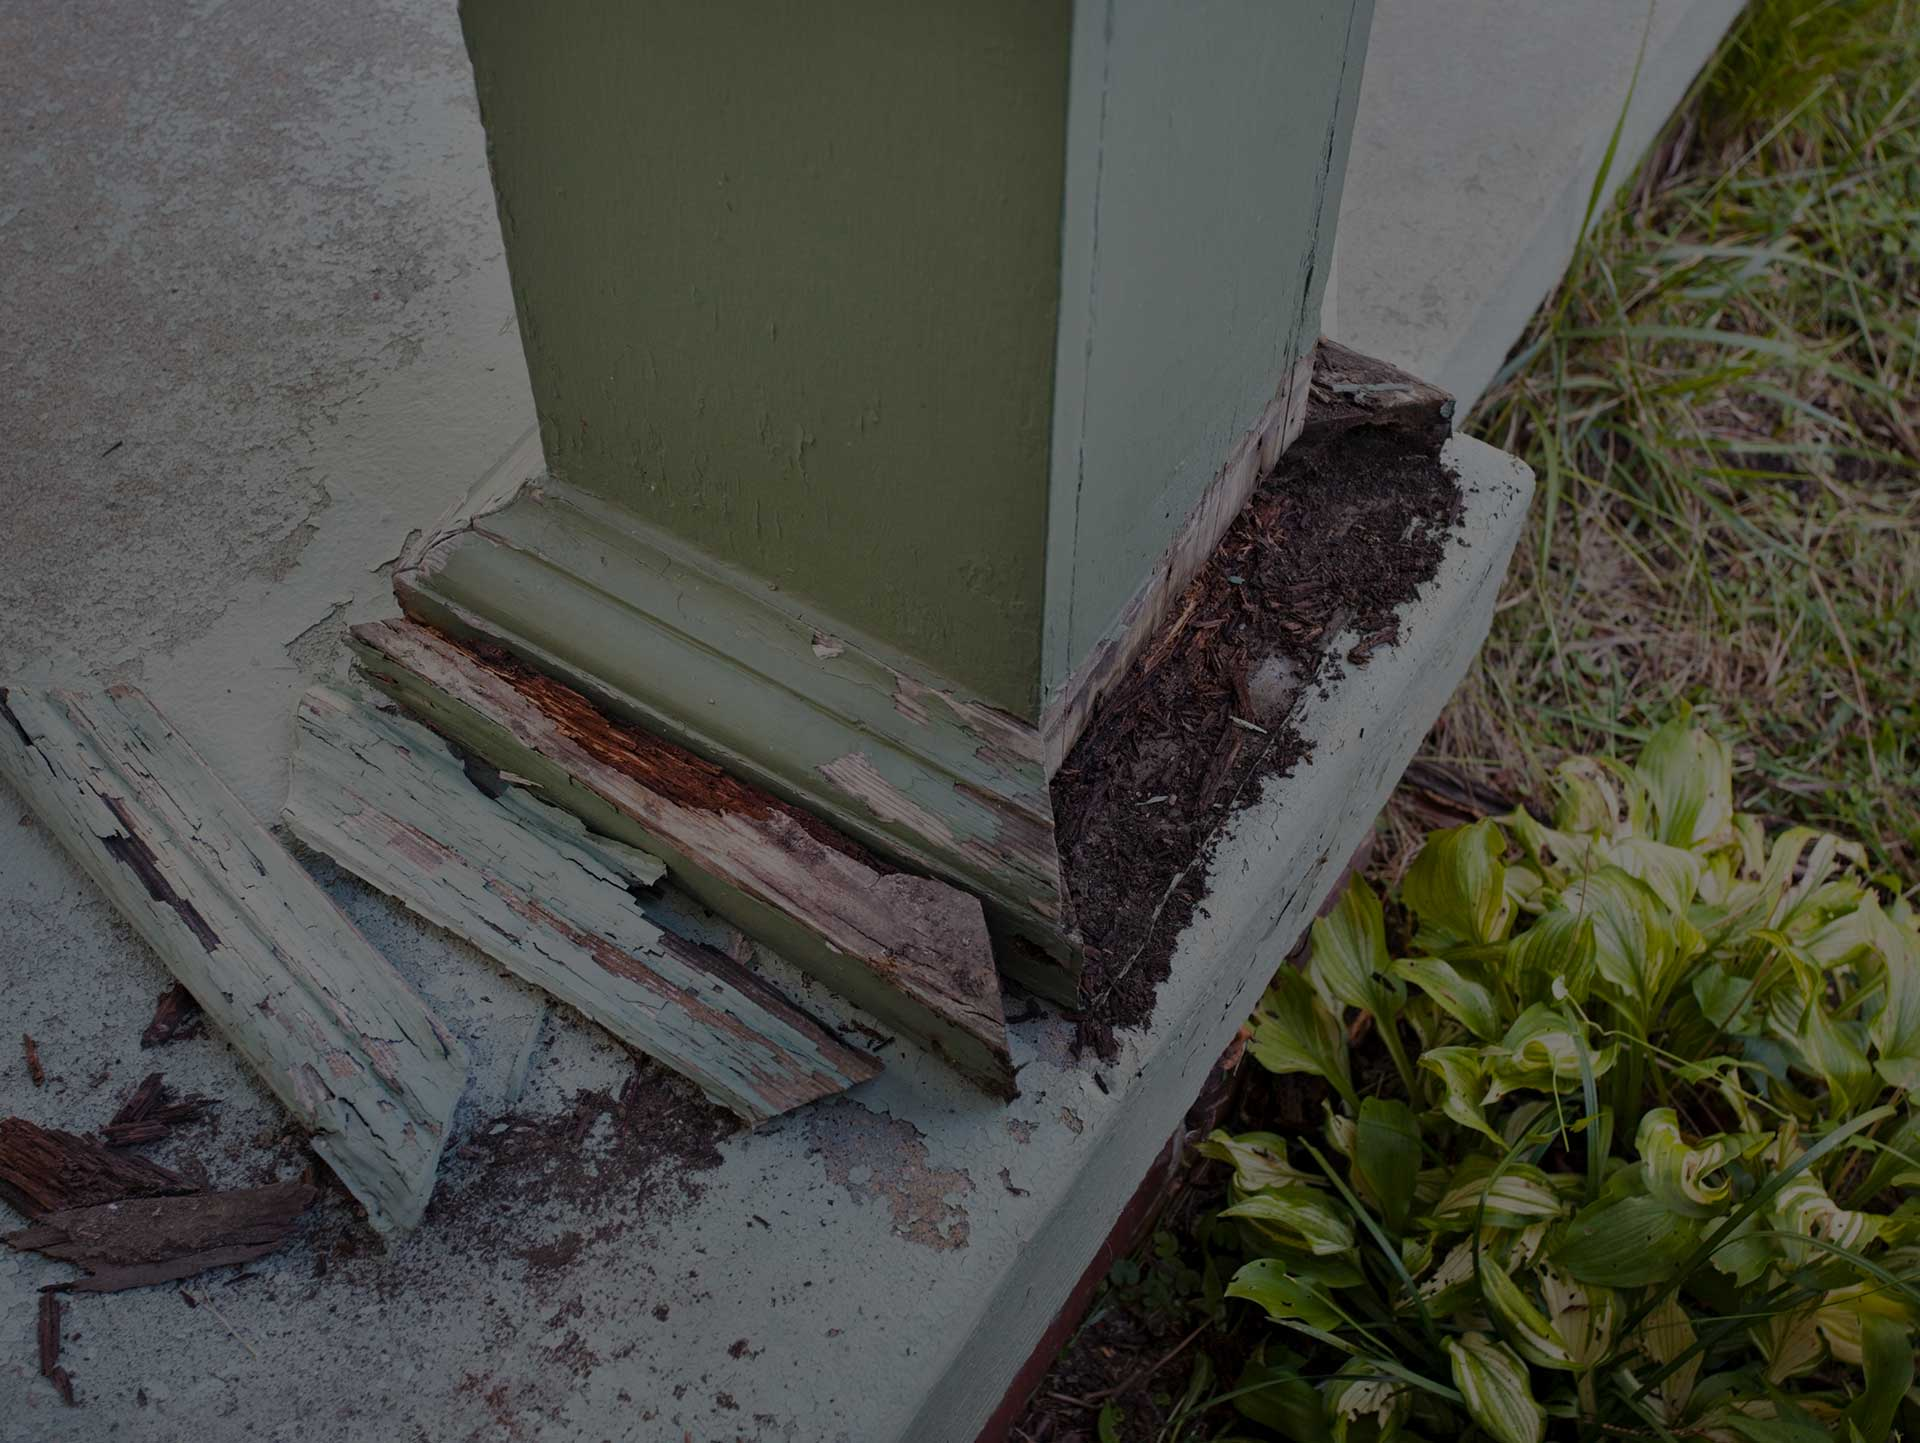 Termite Damage on Wooden Pillar